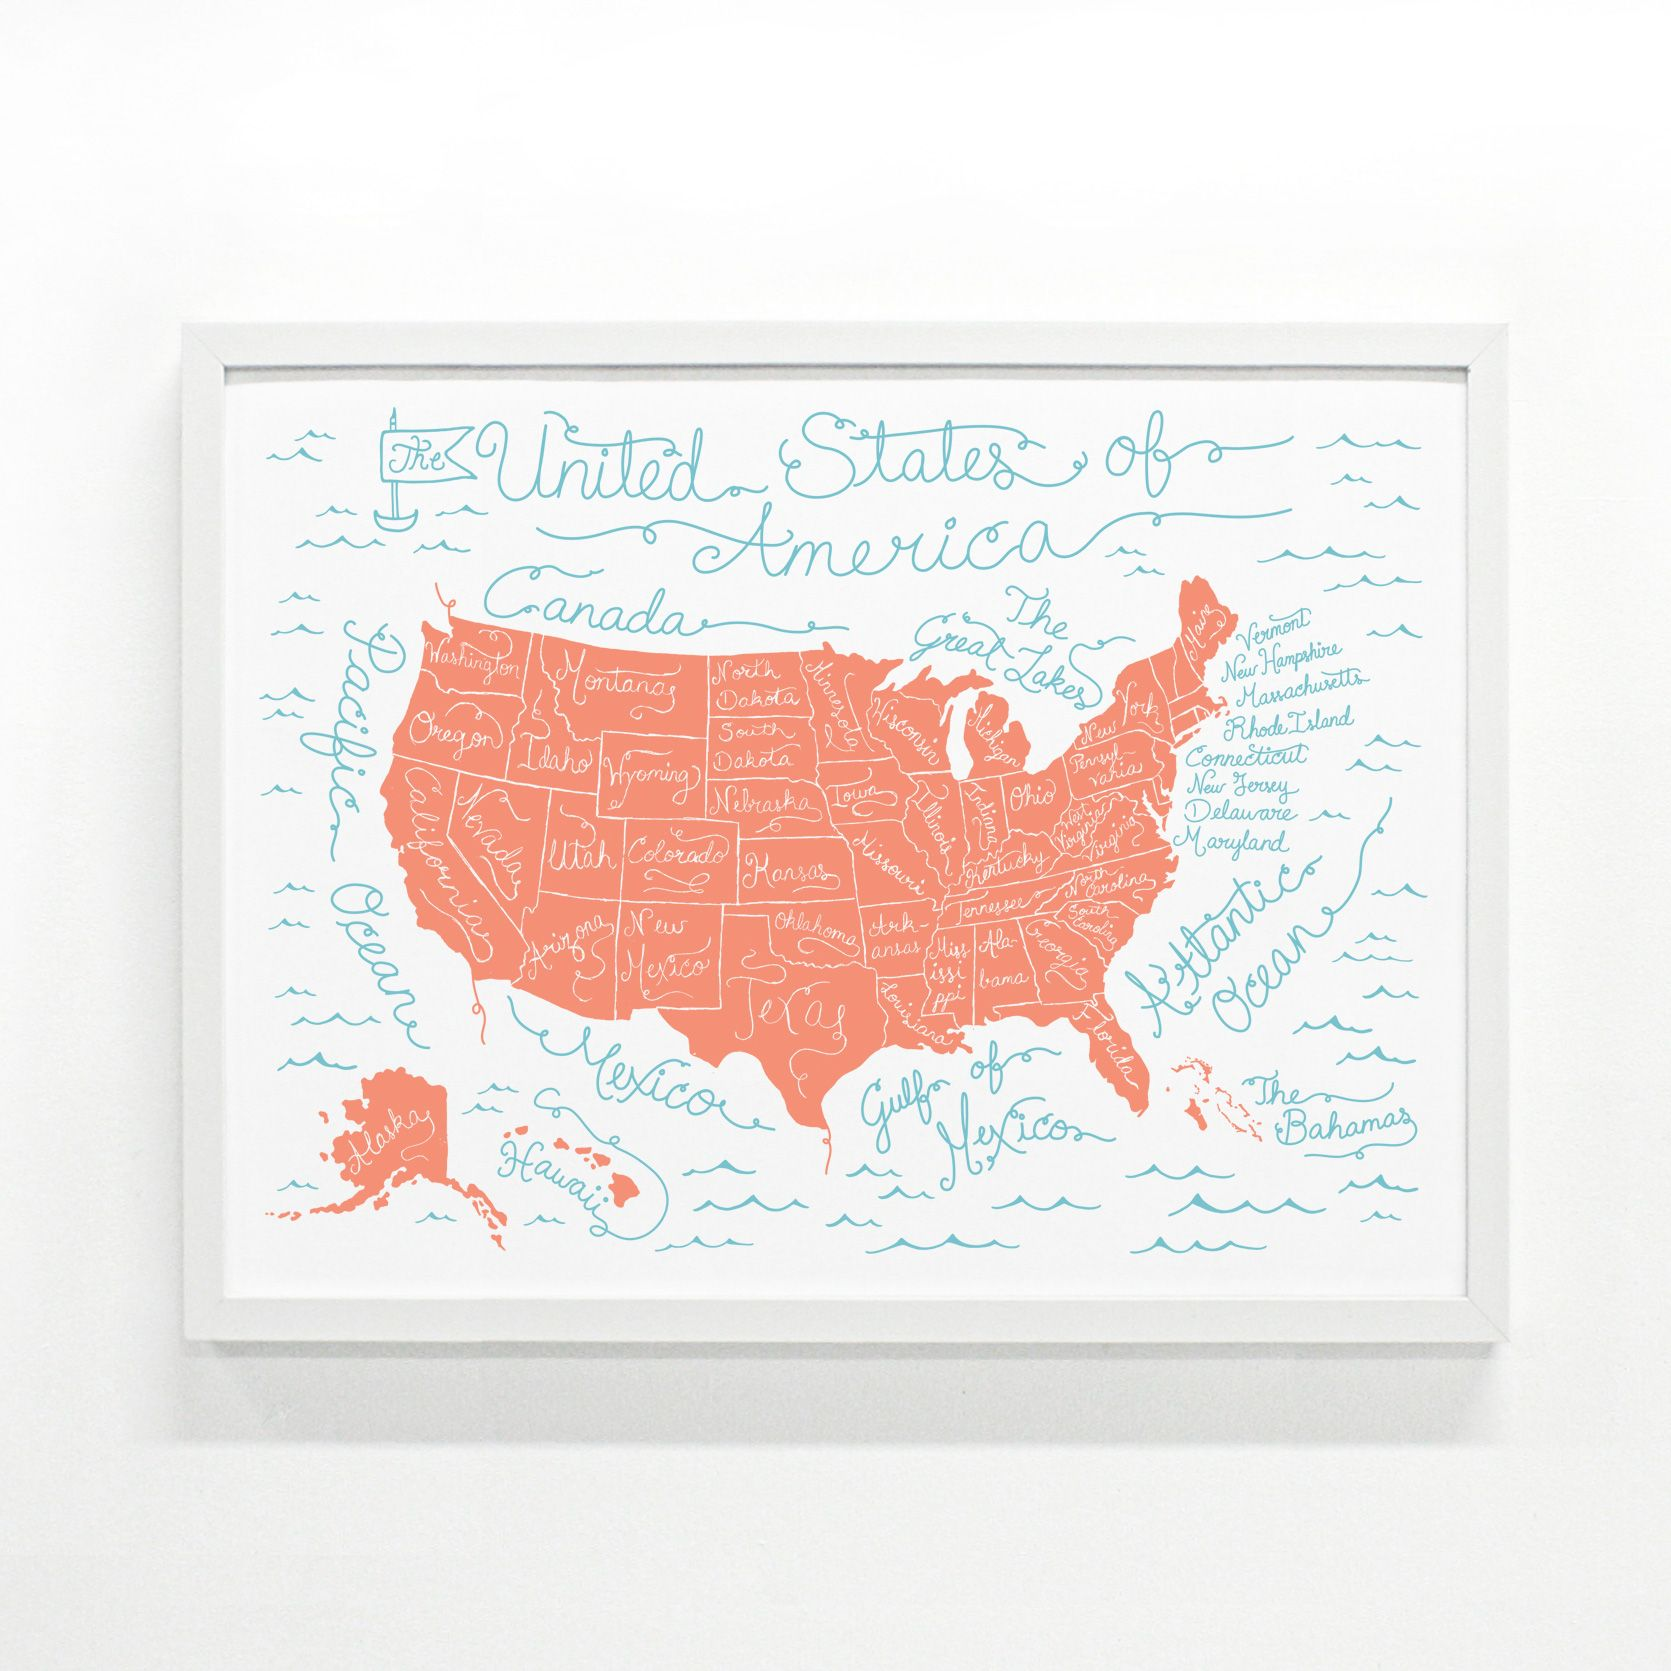 Monorail s USA Map Print is a beautiful piece of decor that only